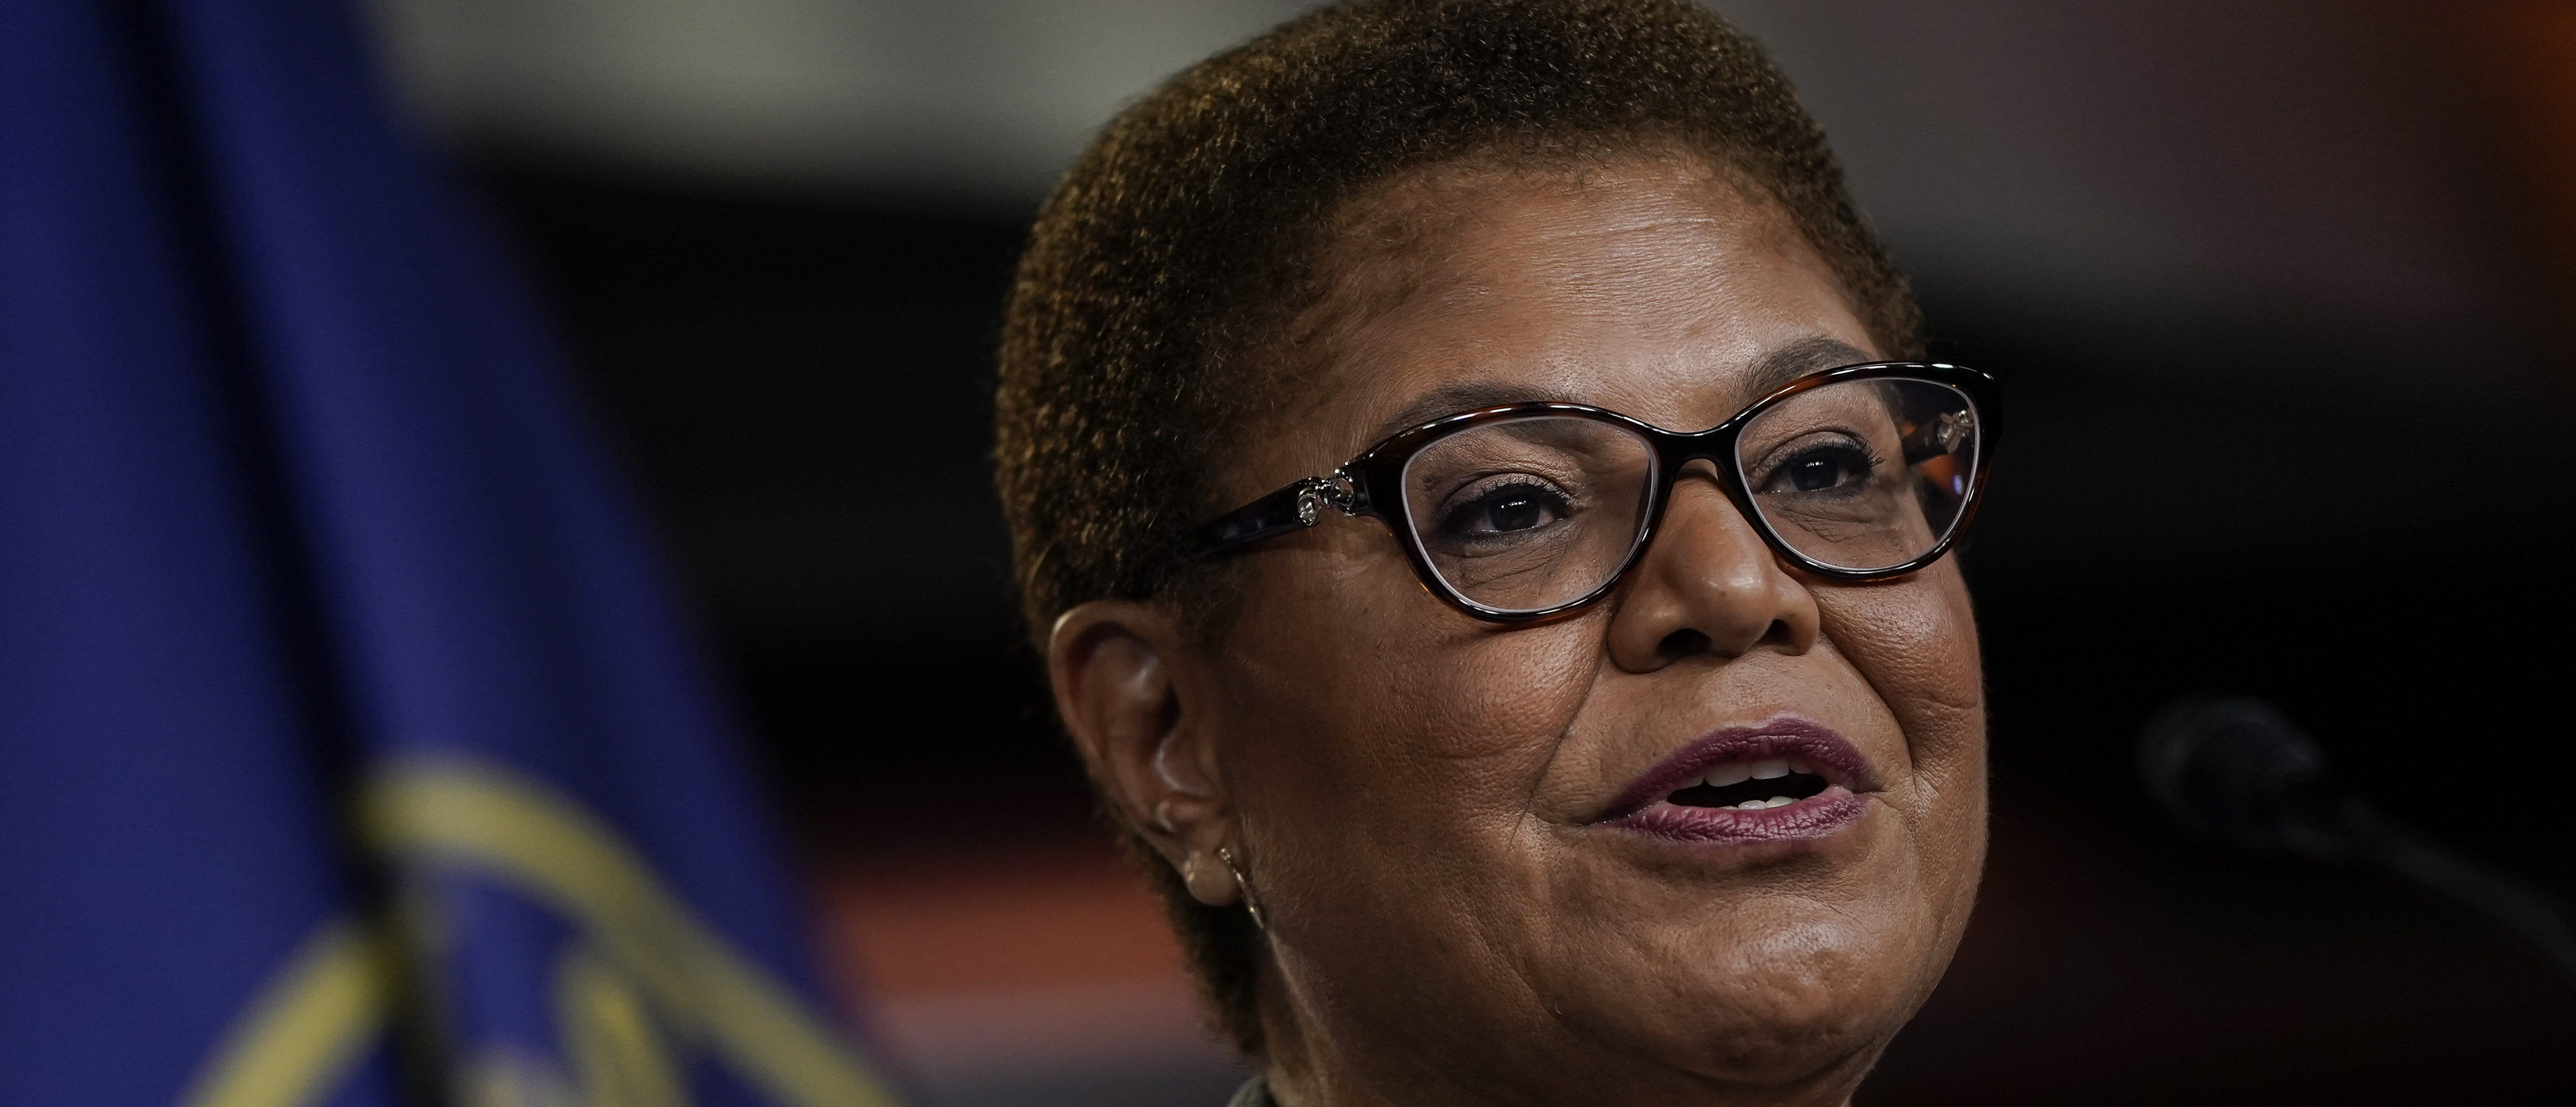 EXCLUSIVE: Karen Bass Pictured At Nation Of Islam Events, Wouldn't Disavow Radical Group